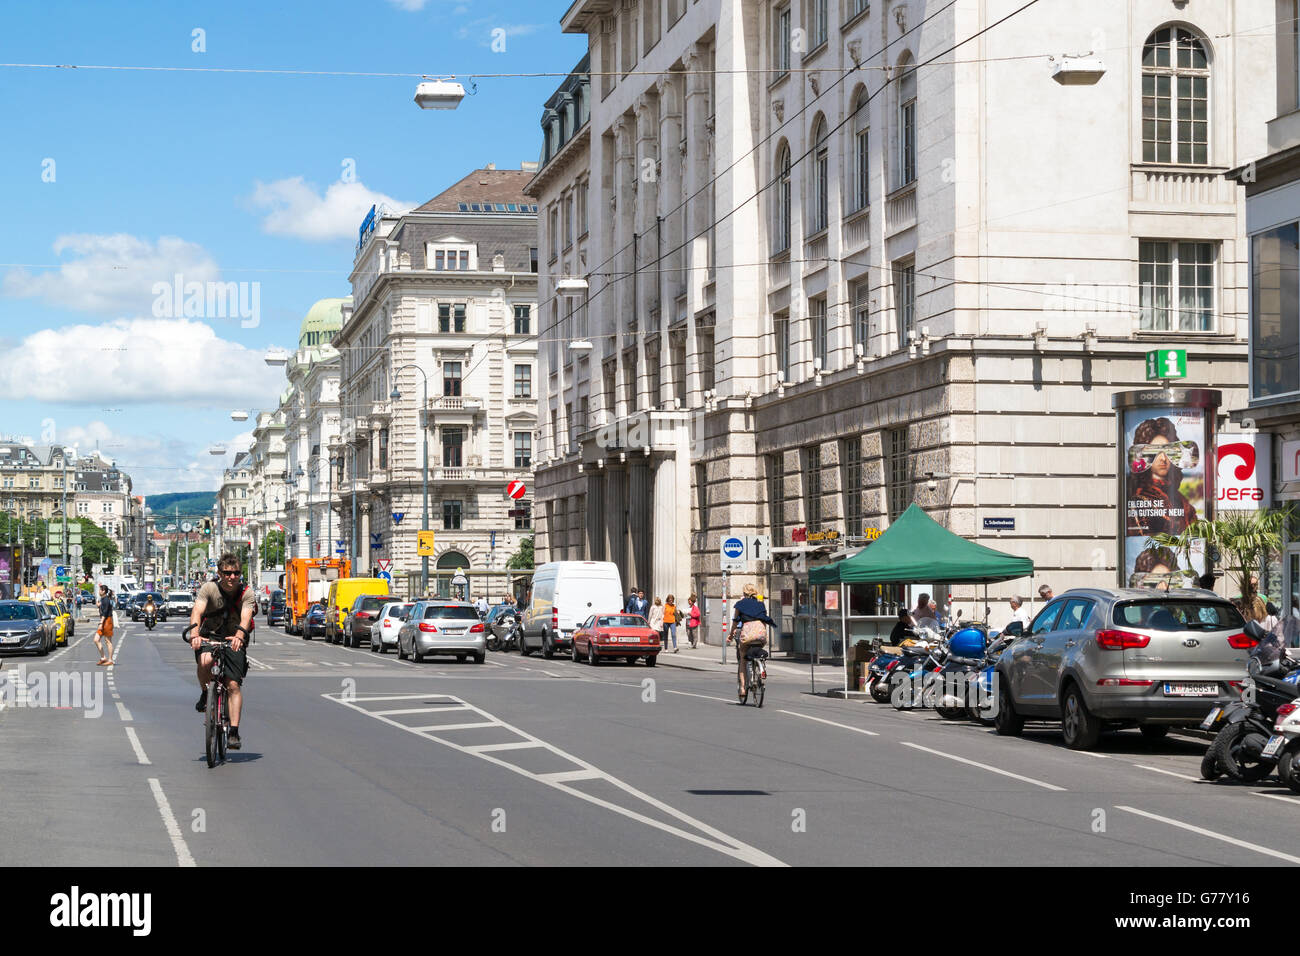 Street scene of Schottengasse with bicyclists and cars in old city centre of Vienna, Austria - Stock Image